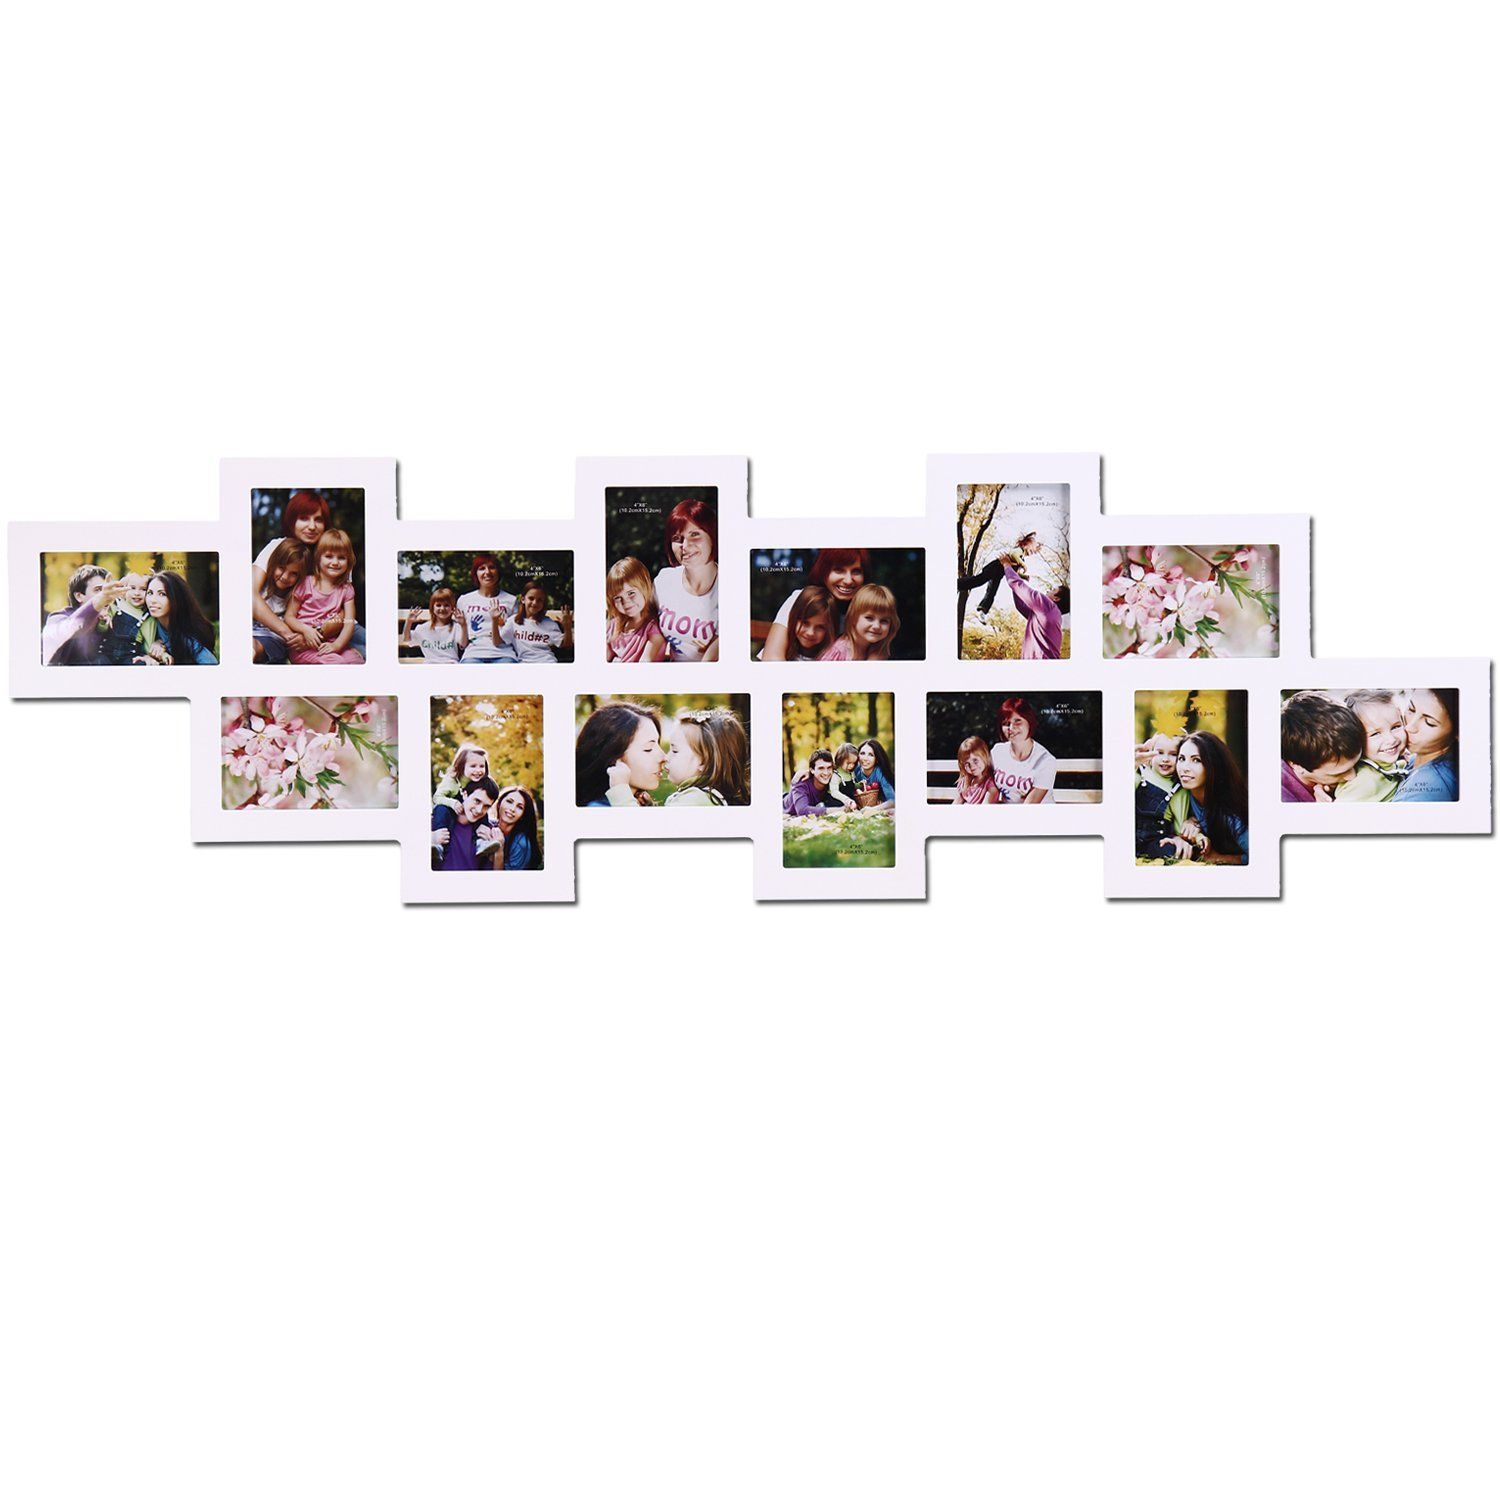 Amazon Com Adeco Pf0212 14 Opening White Wood Wall Collage Photo Picture Frames Holds 4x6 Inch Photos H Free Picture Frames Hanging Pictures Picture Collage